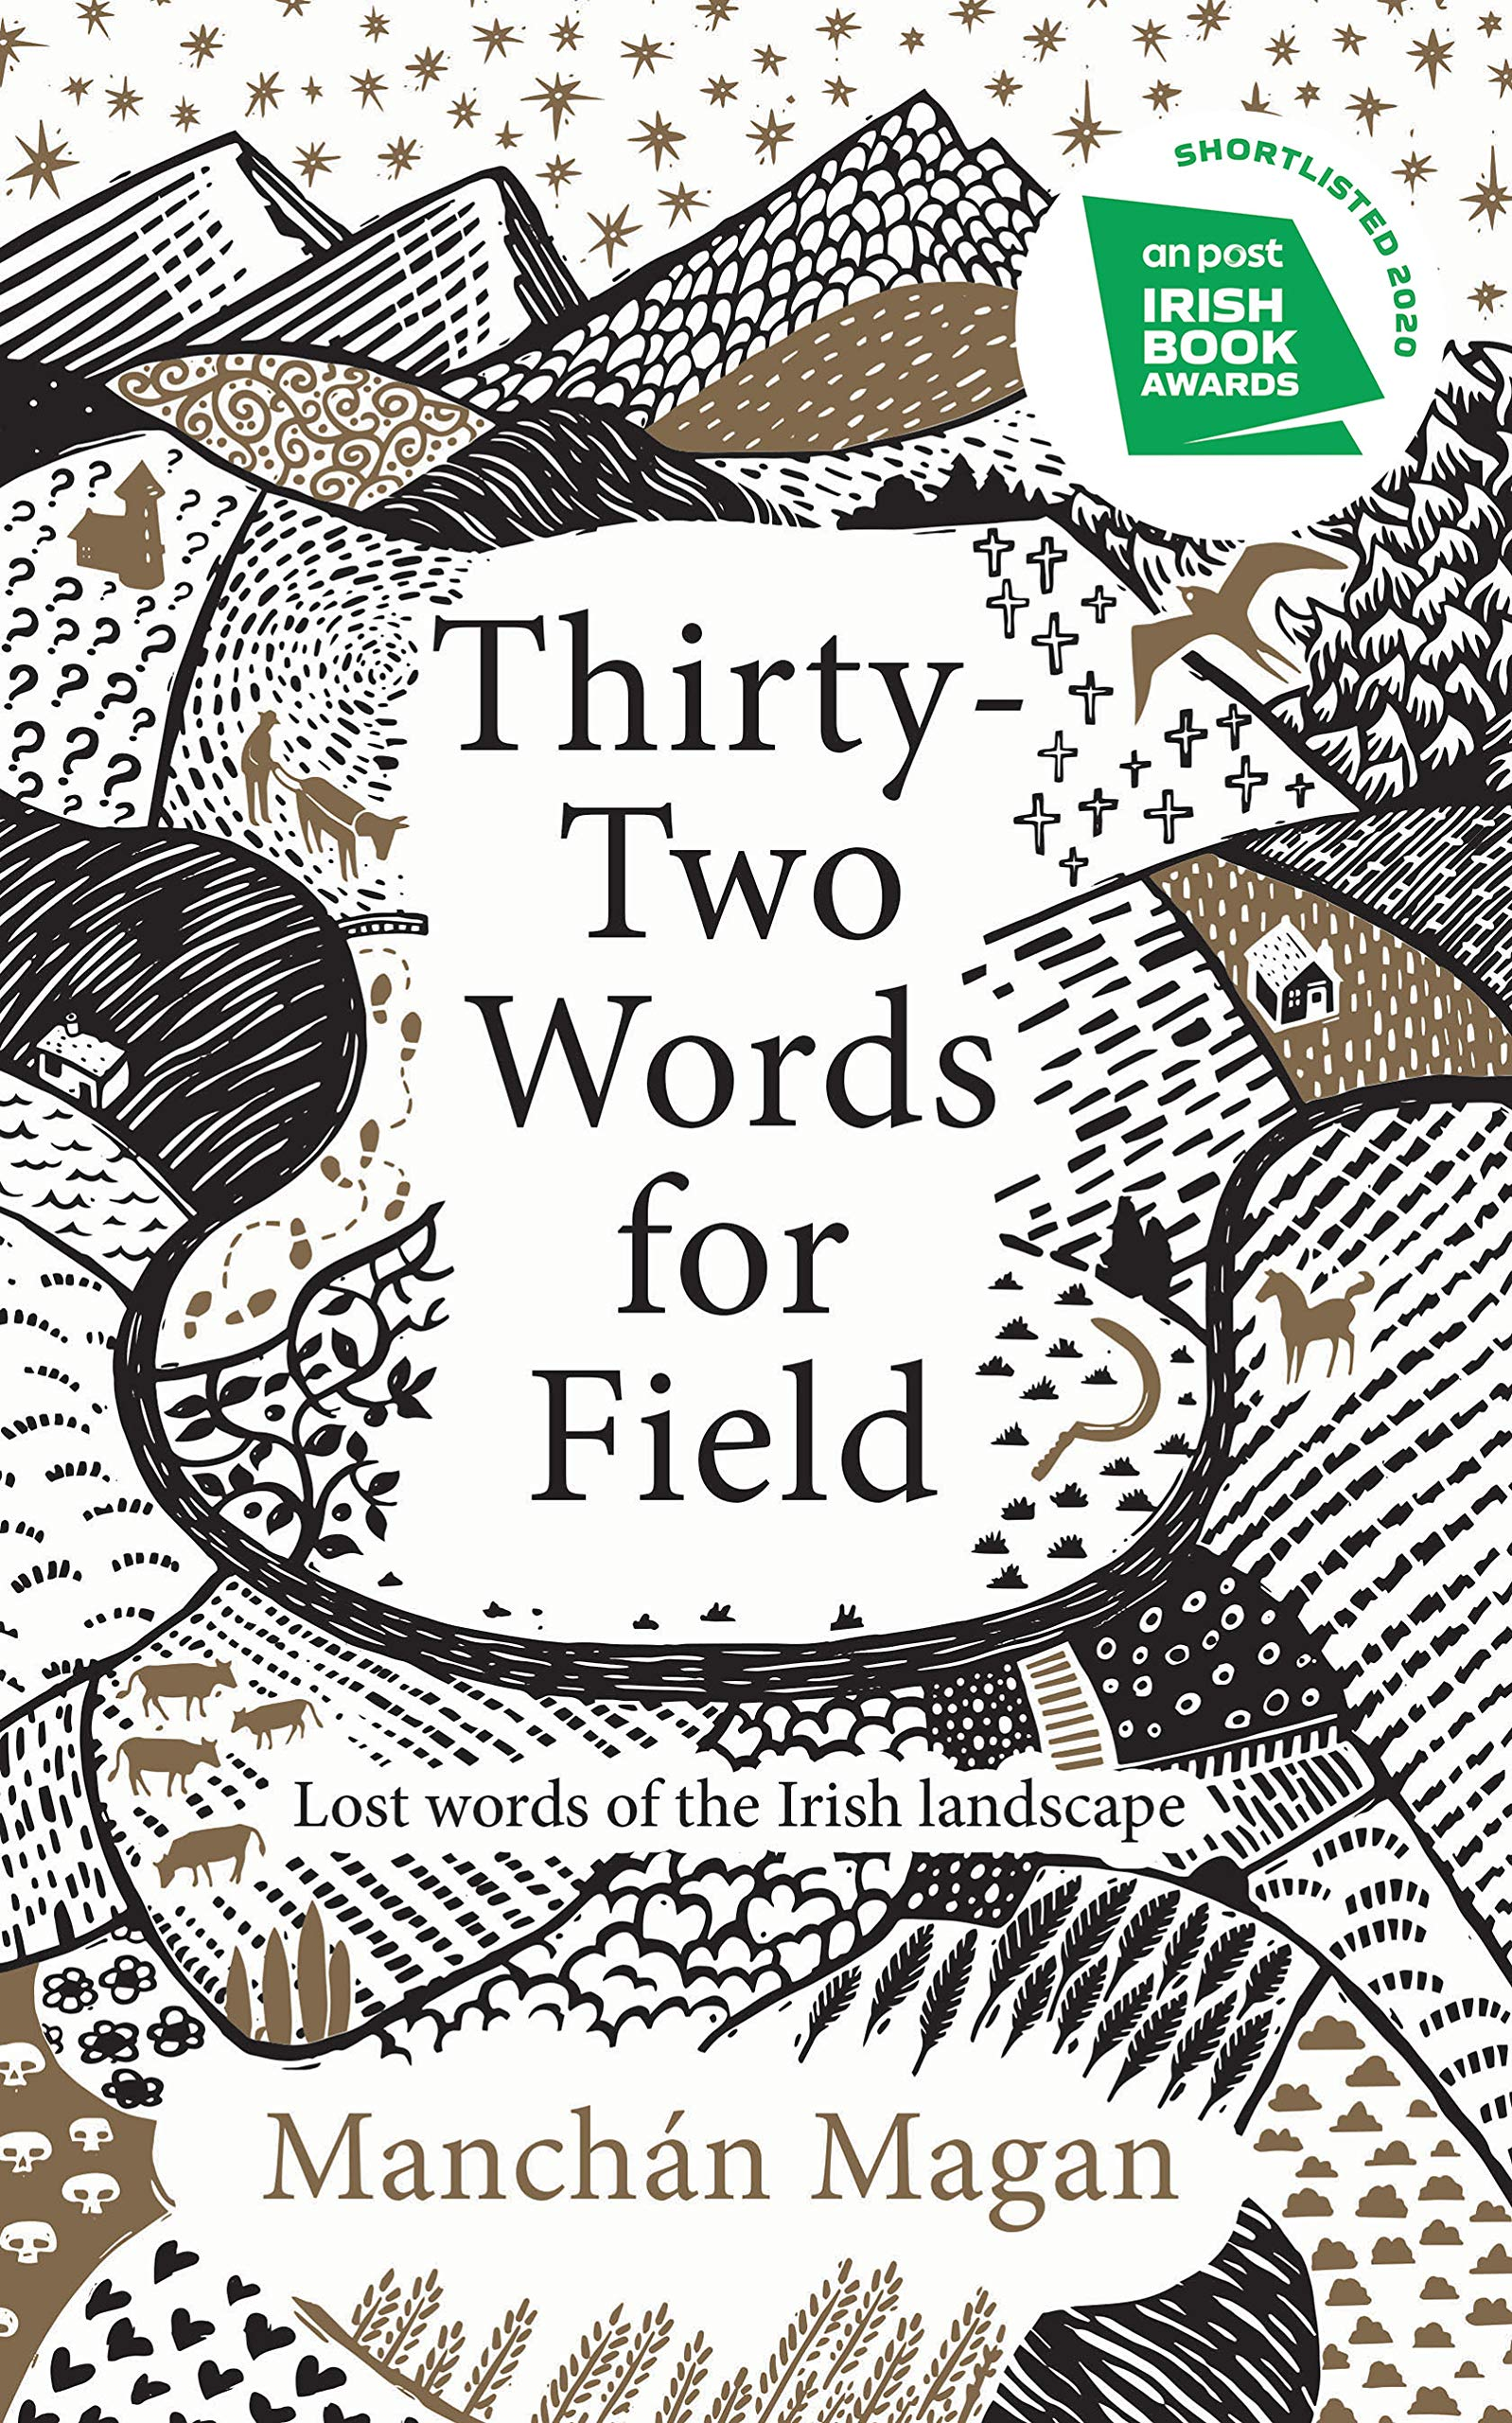 Thirty Two Words For Field | Malcolm Magan | Charlie Byrne's